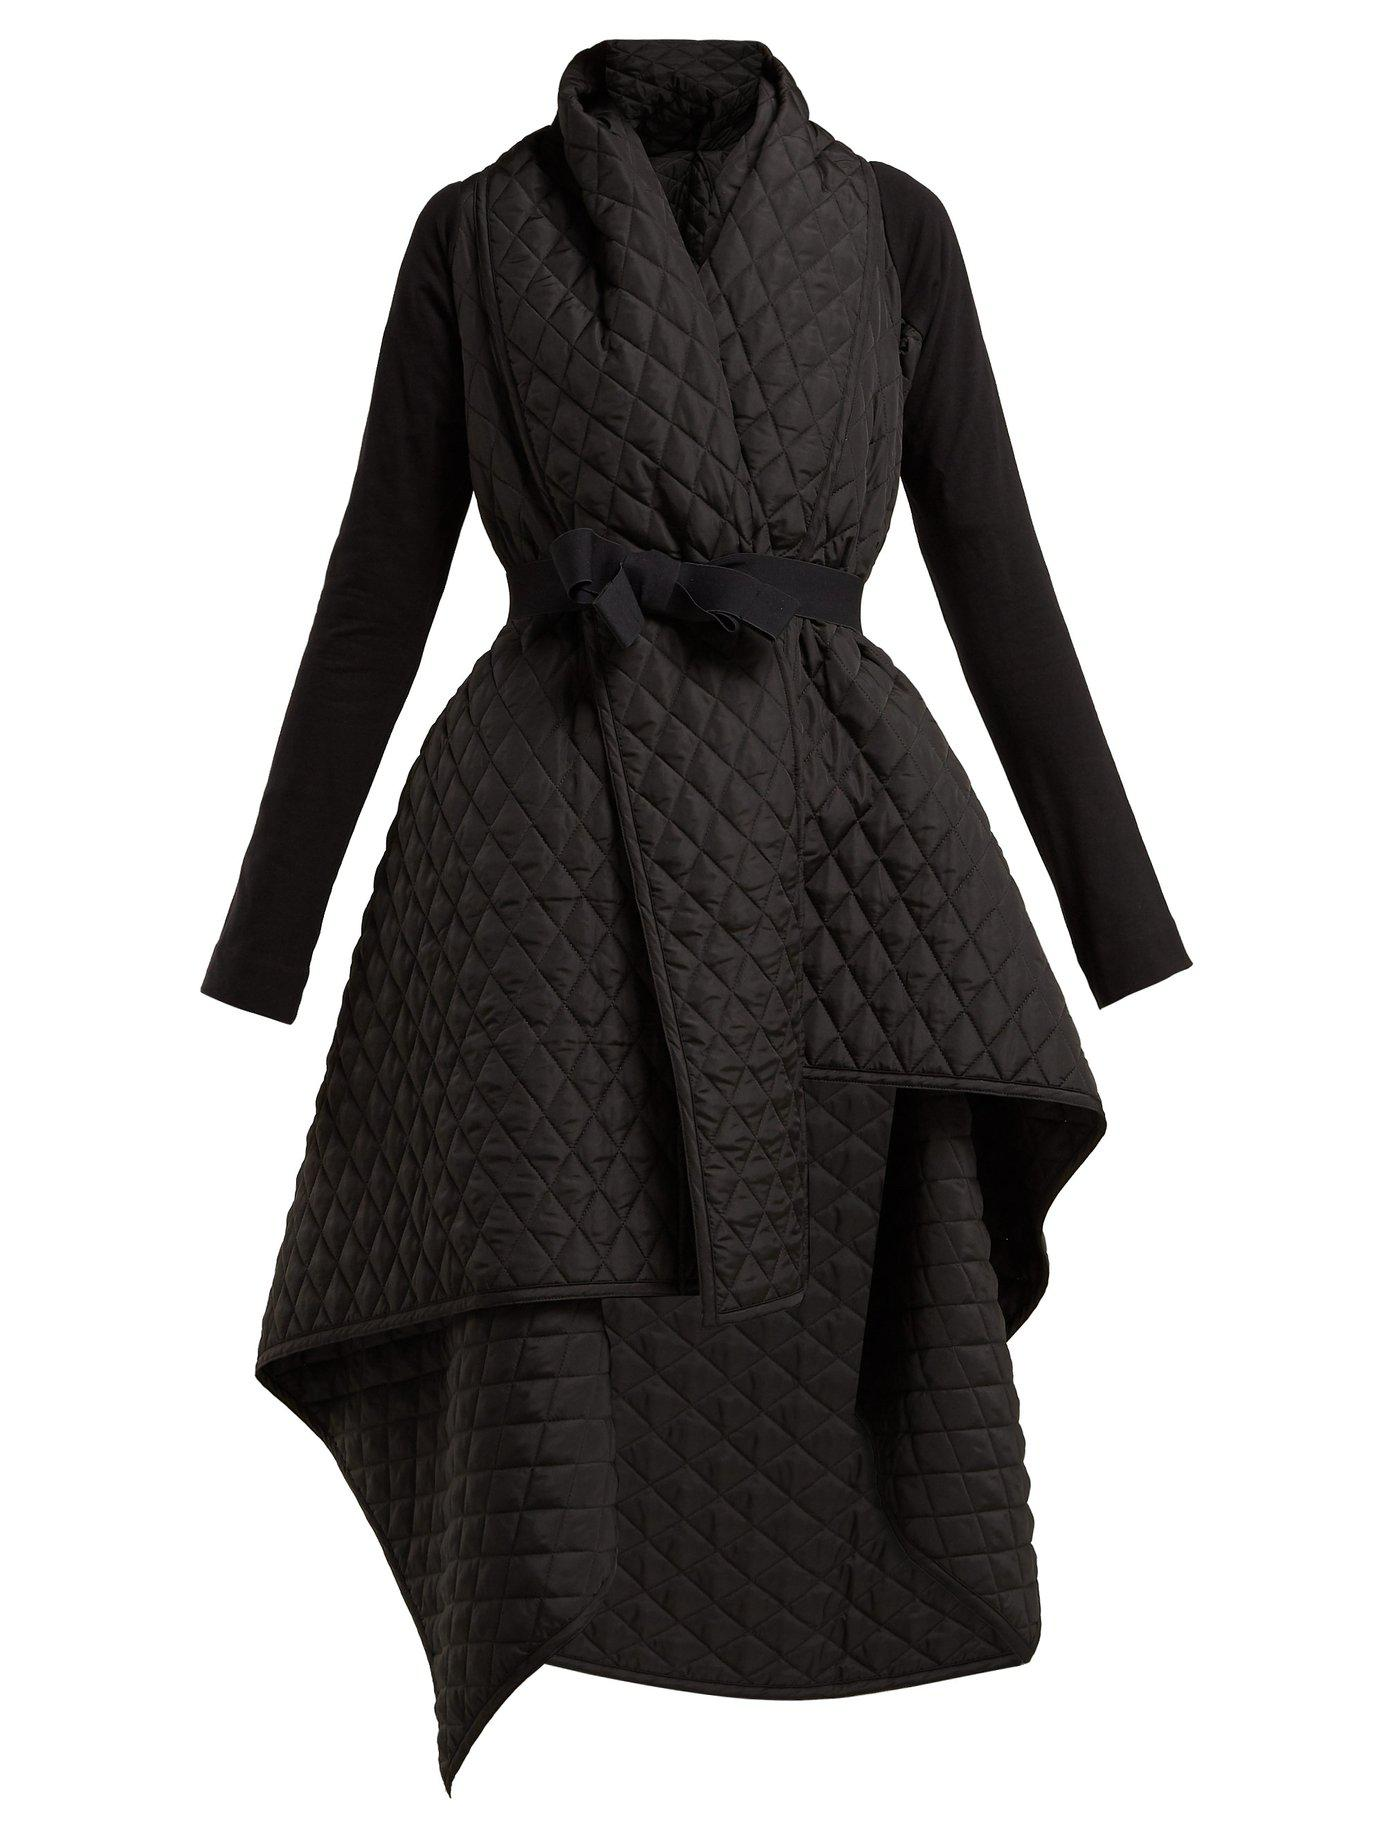 Lyst - Norma Kamali Quilted Blanket Belted Coat in Black 1d5c55b40